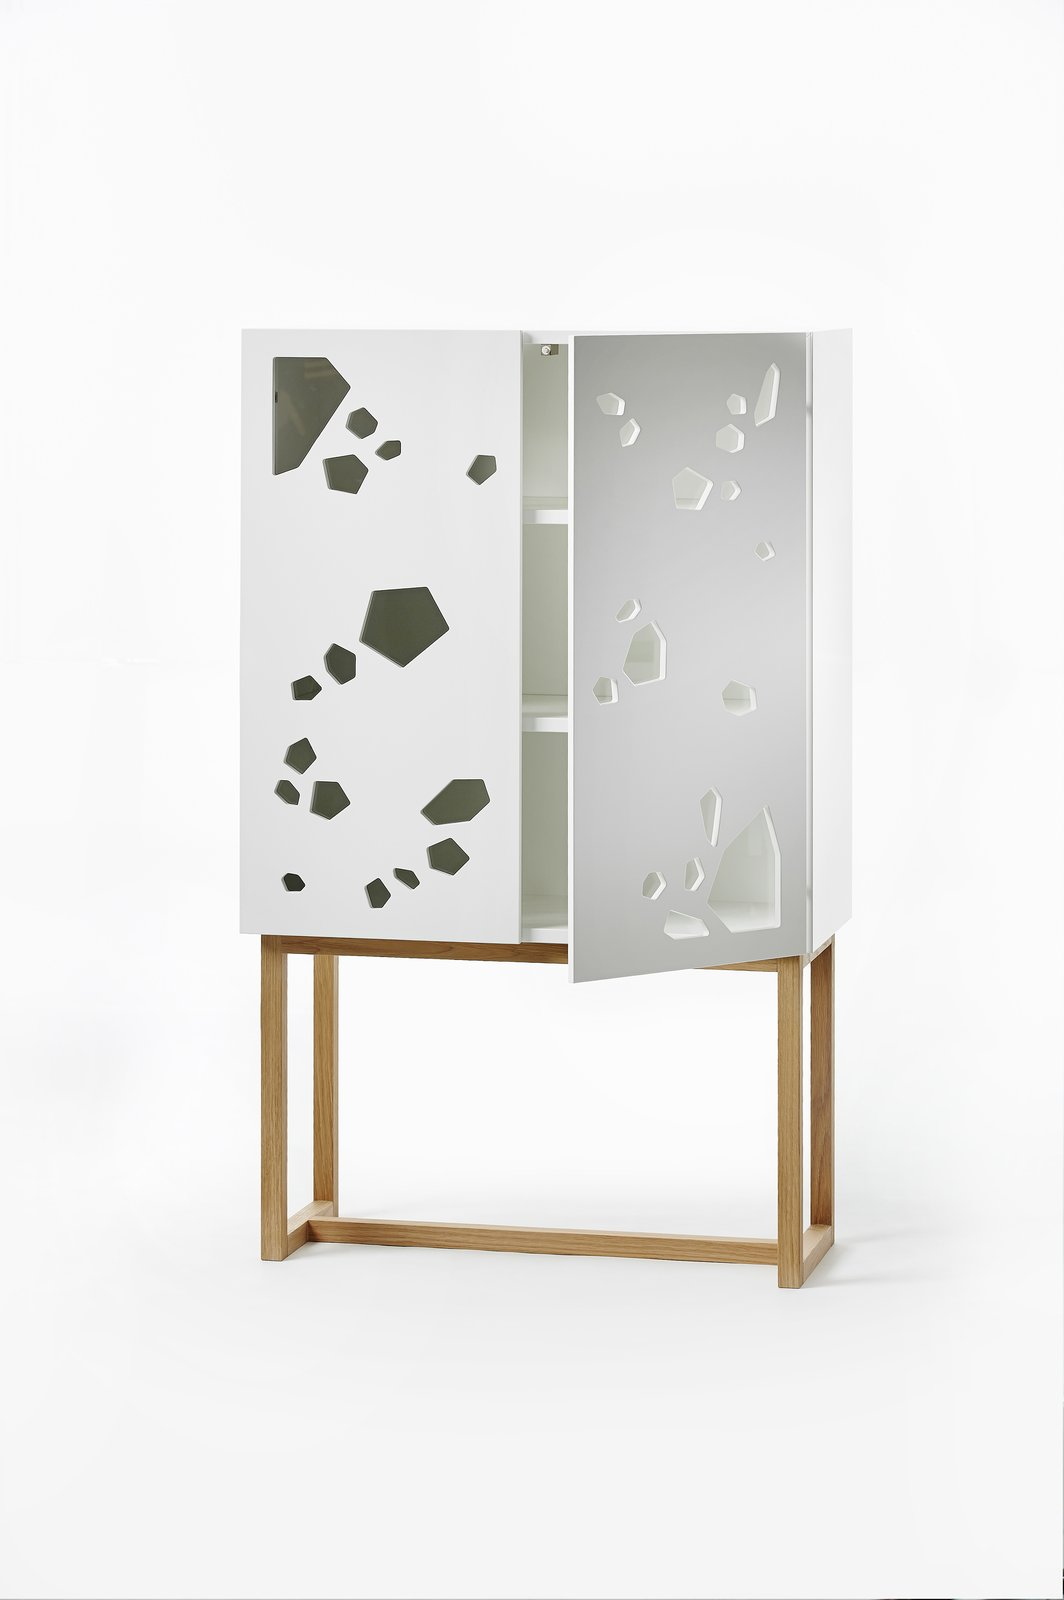 Using geometric shapes, designers Sara and Anna Larsson at young furniture brand A2 (established 2008) gives the Sneak Peek cabinet a playful twist. The pattern of irregular holes makes it possible to display favorite items and hide the rest. The cabinet is handcrafted in Sweden, and is available with base or frame.  On the Scene at Stockholm Design Week 2013 by Marianne Johnsgård